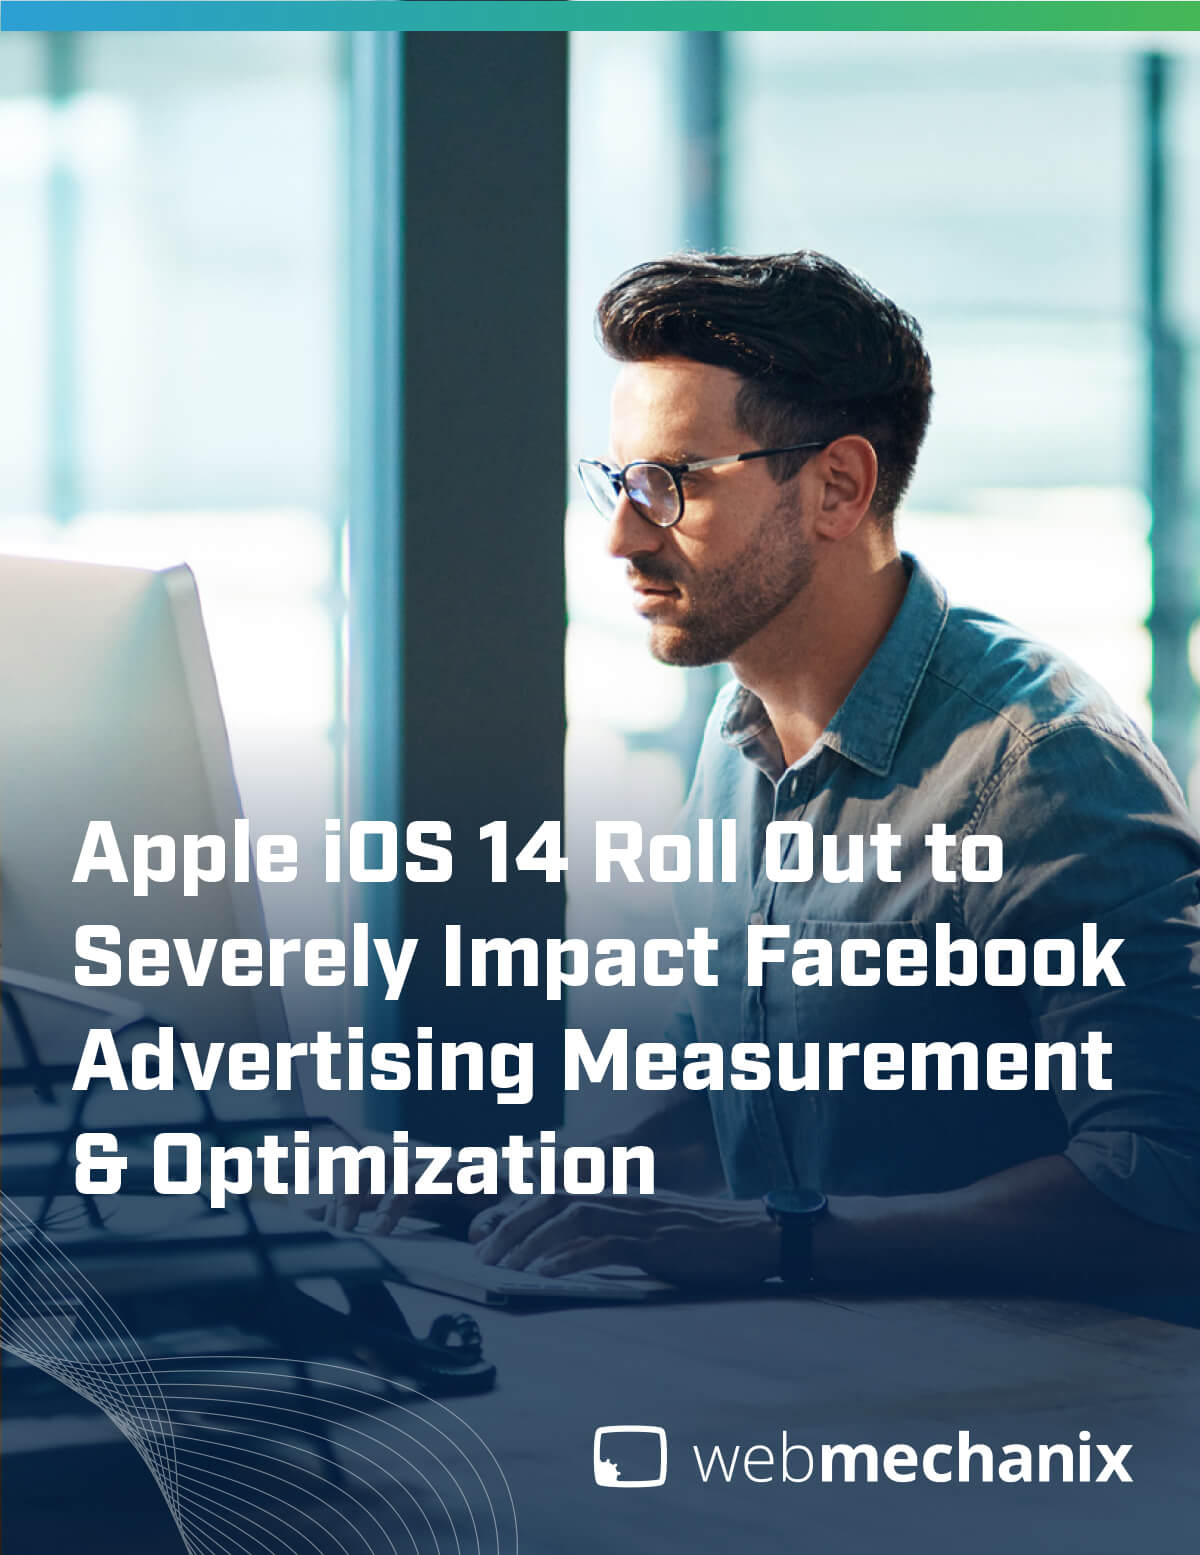 The Digital Advertising Impact of iOS 14